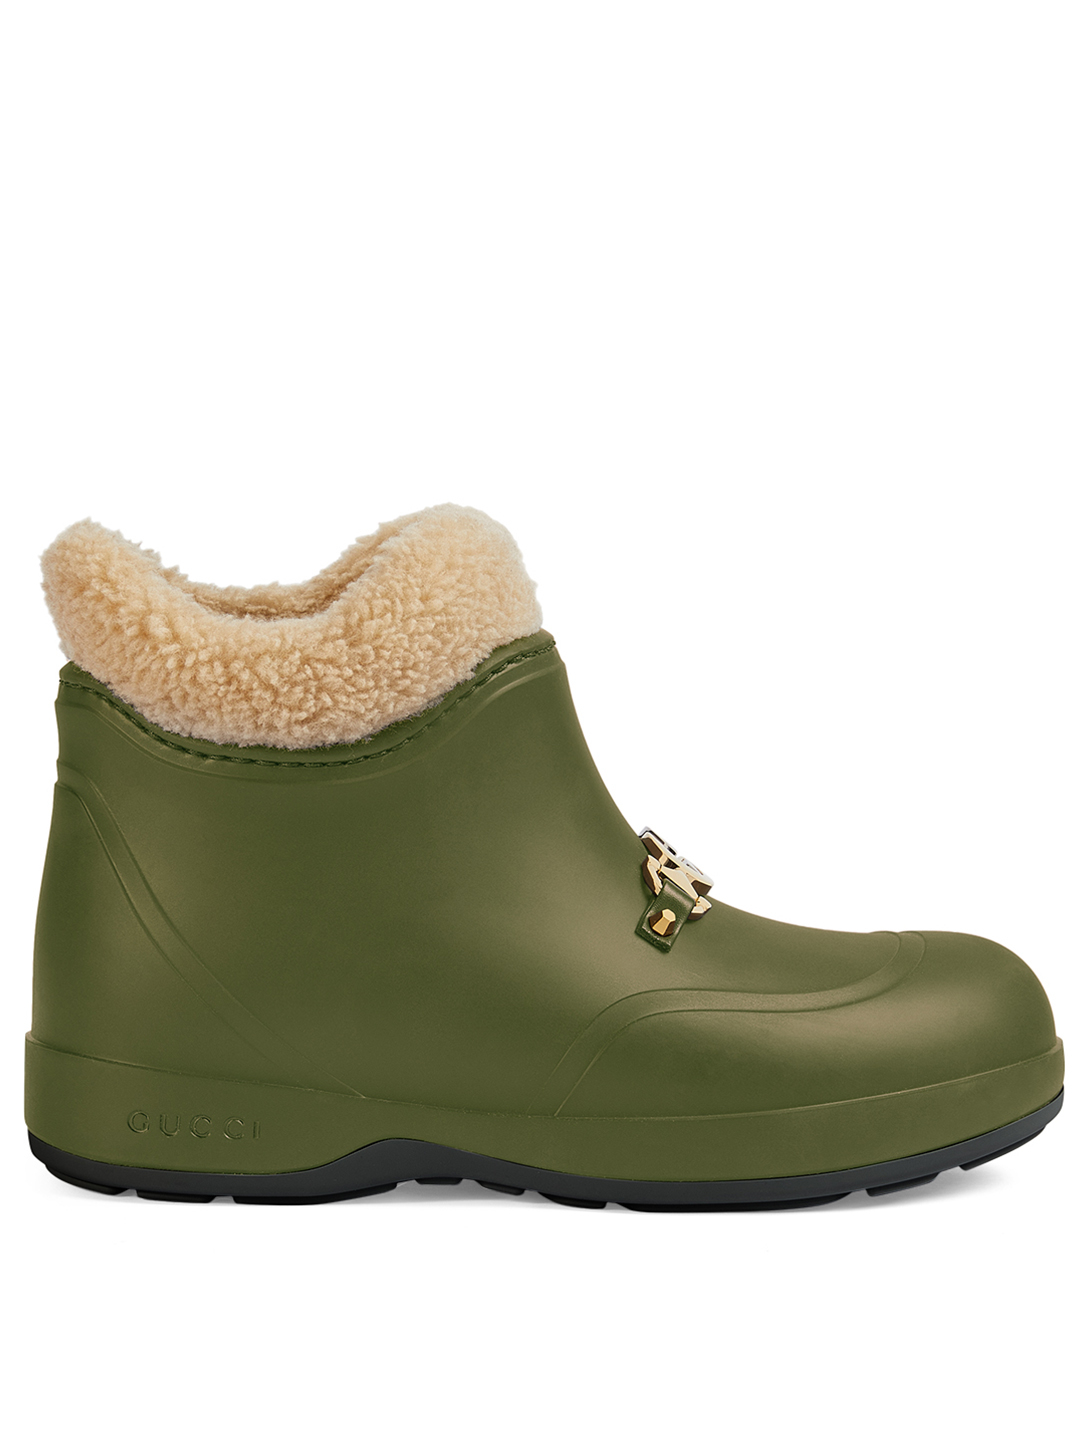 GUCCI Rubber Ankle Boots With Horsebit Women's Green